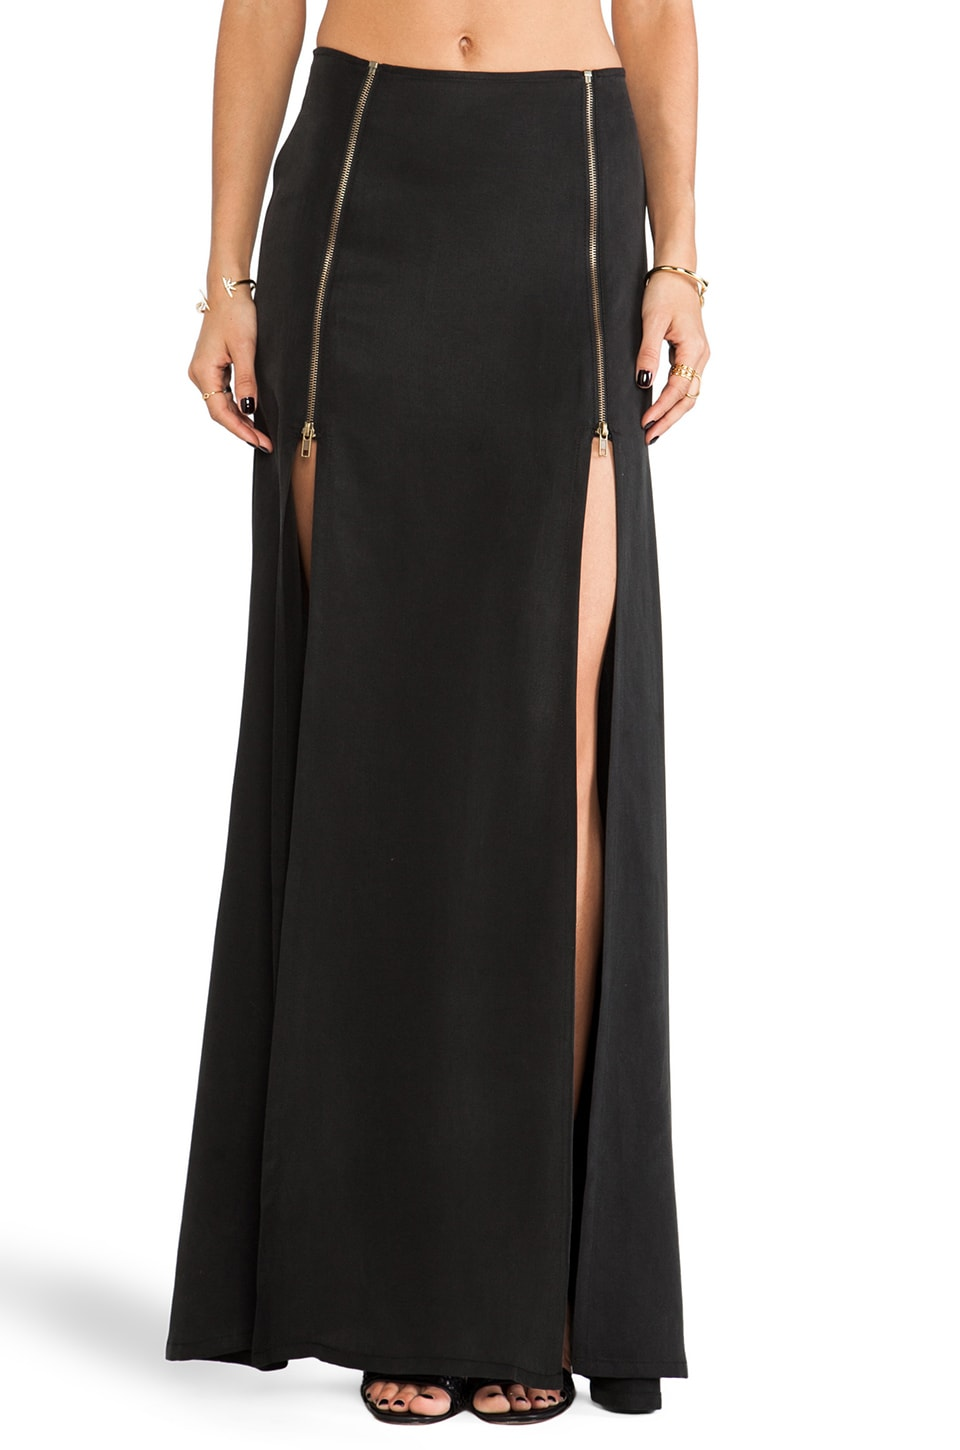 STONE_COLD_FOX Alejandro Skirt in Black